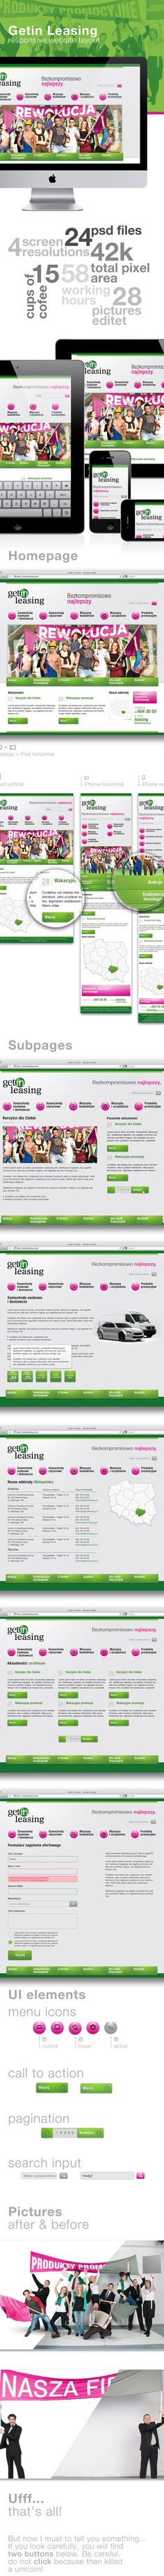 Getin Leasing responsive website layout by Patryk Ciacma, via Behance